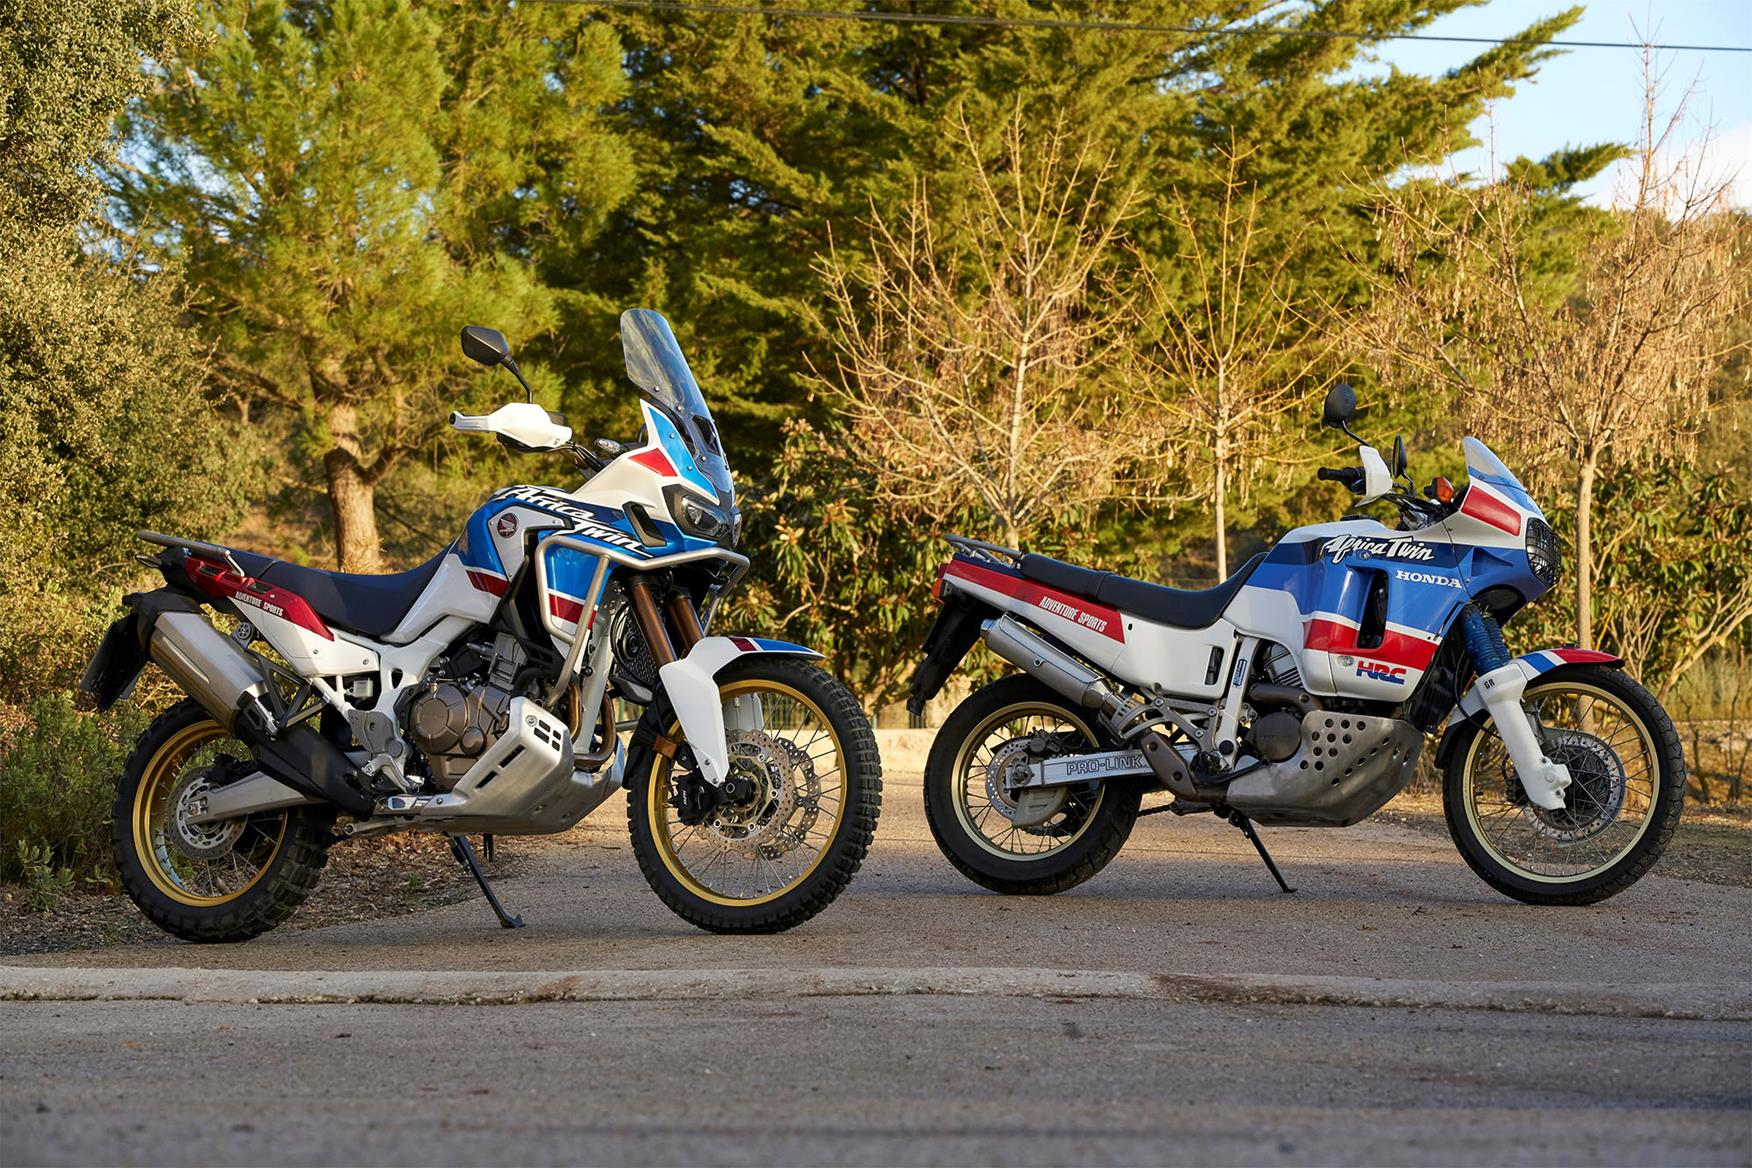 Two versions of the Honda Africa Twin